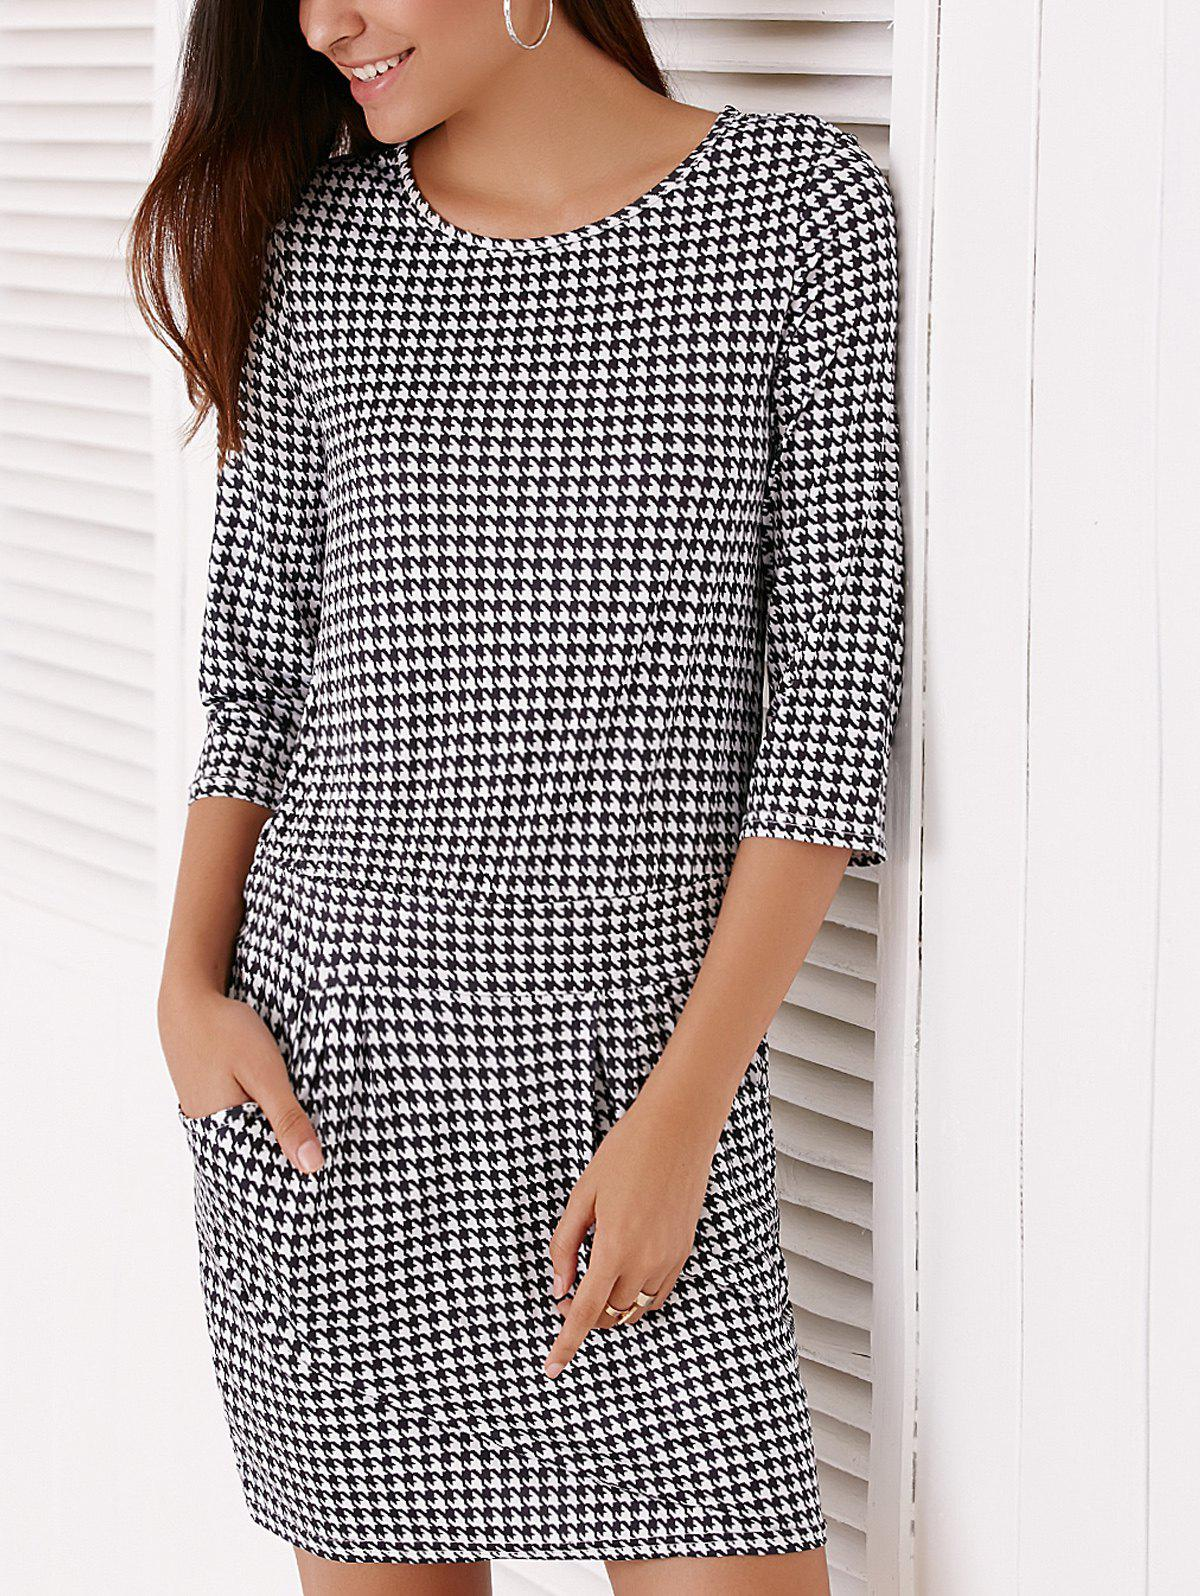 Trendy Houndstooth Printed 3/4 Sleeve Dress For Women - WHITE/BLACK S